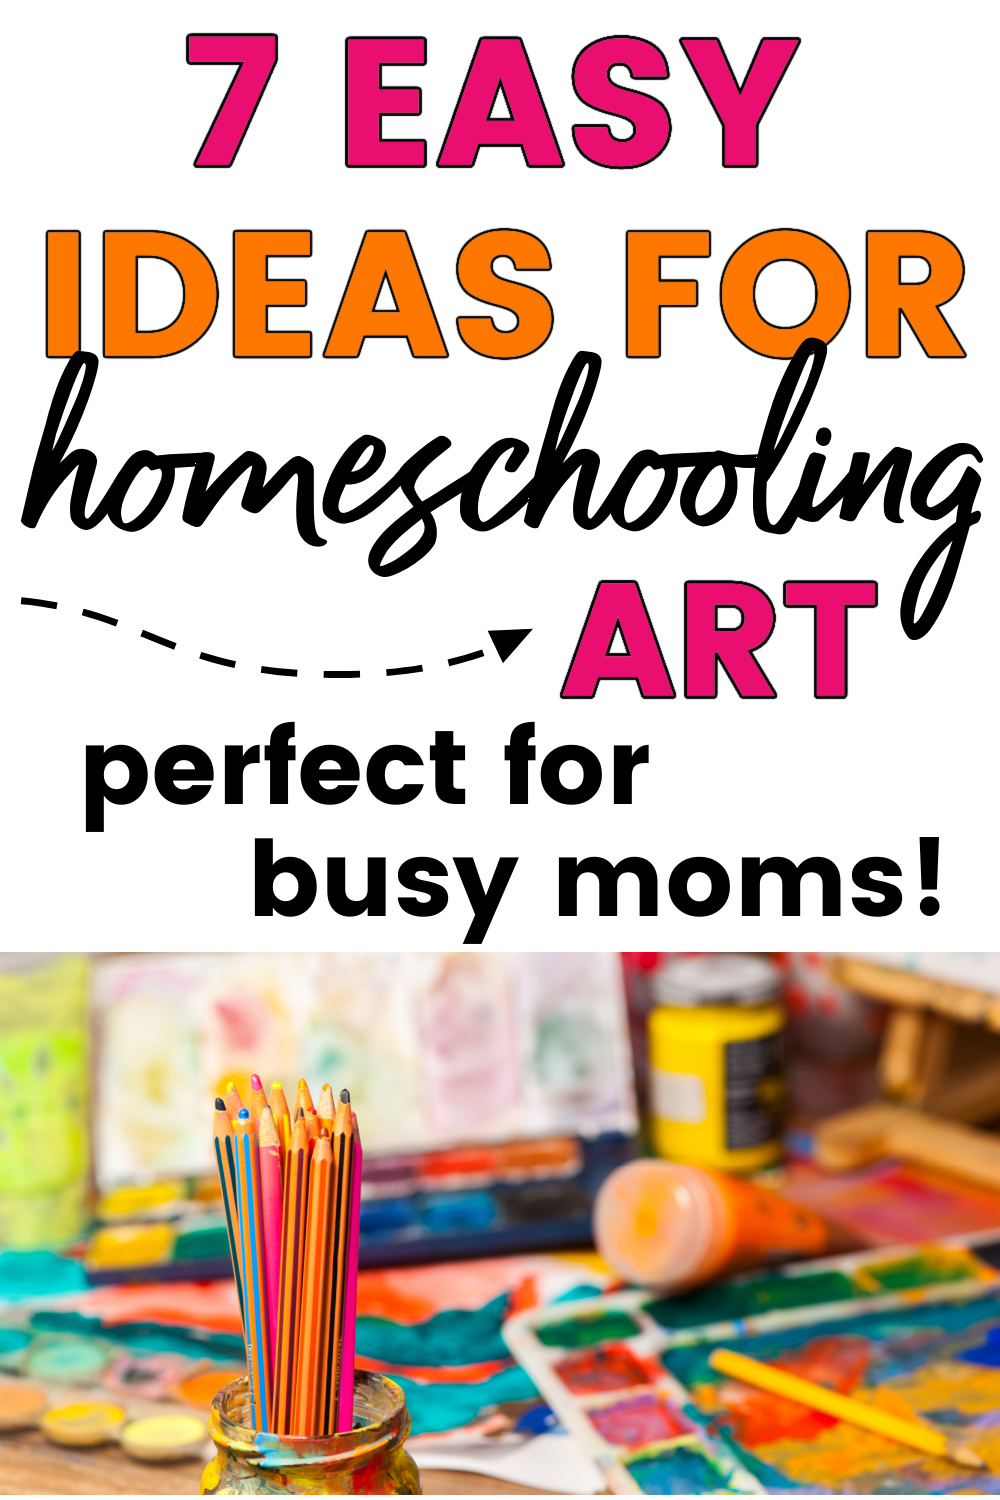 """graphic with text """"7 easy ideas for homeschooling art"""" and image of table covered with art supplies"""